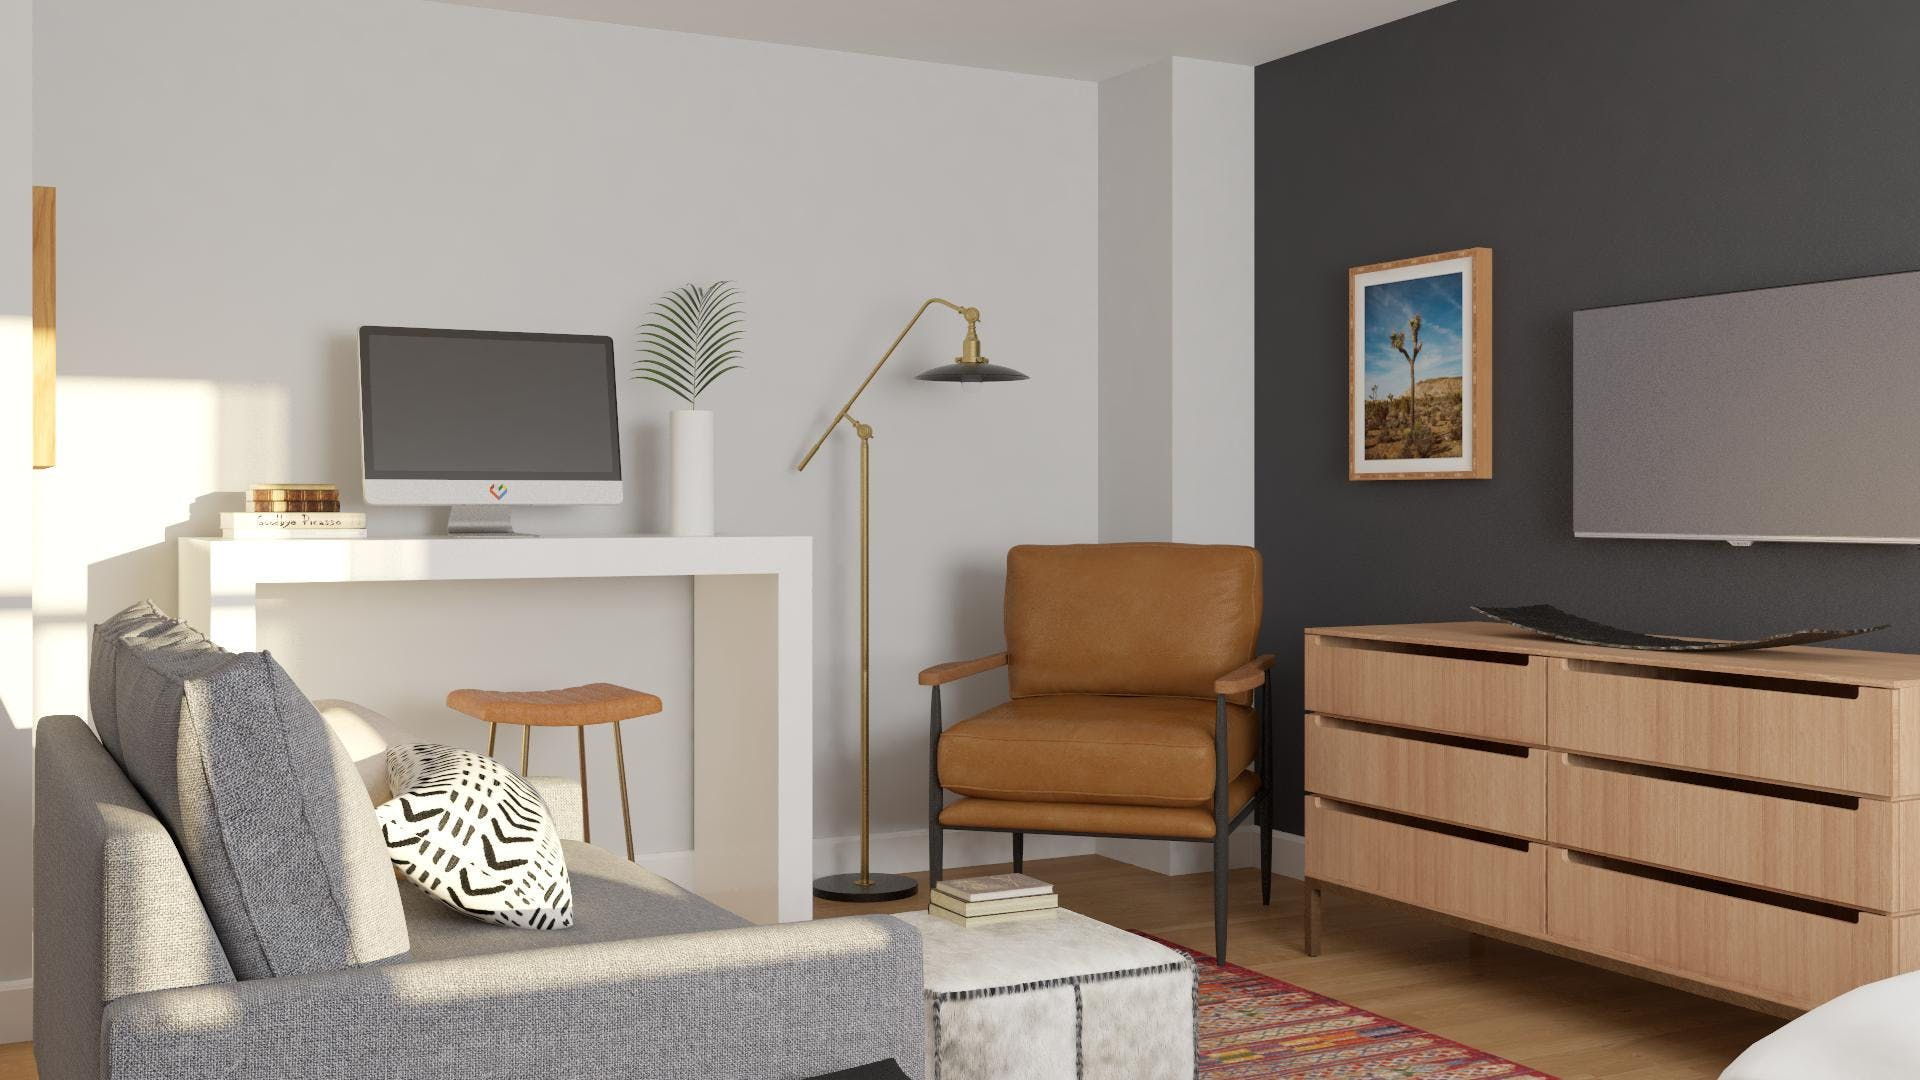 Small Apartment with furniture Pulling Double-Duty